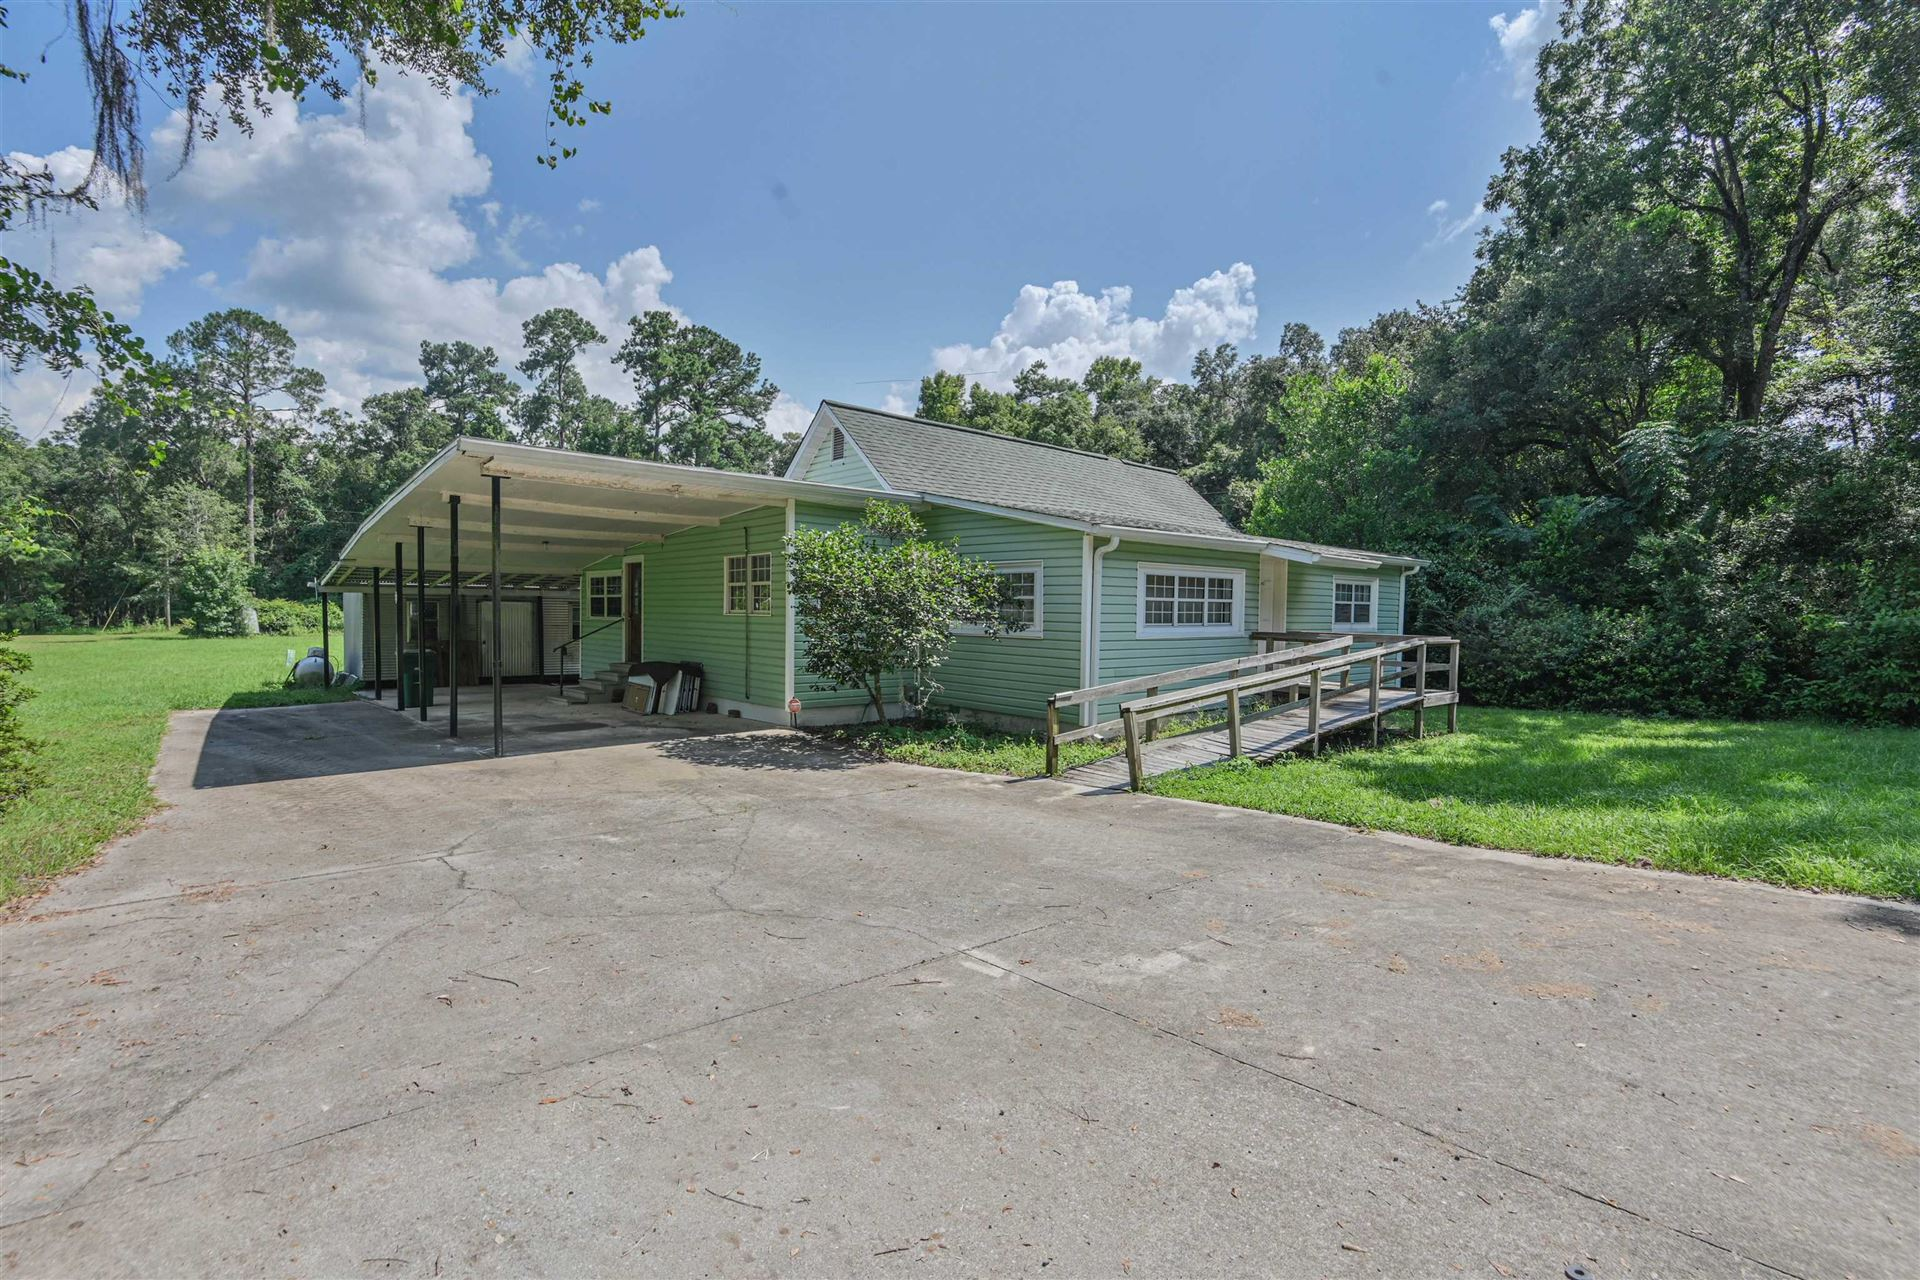 Photo of 9481 Road To The Lake Road, TALLAHASSEE, FL 32317 (MLS # 336773)